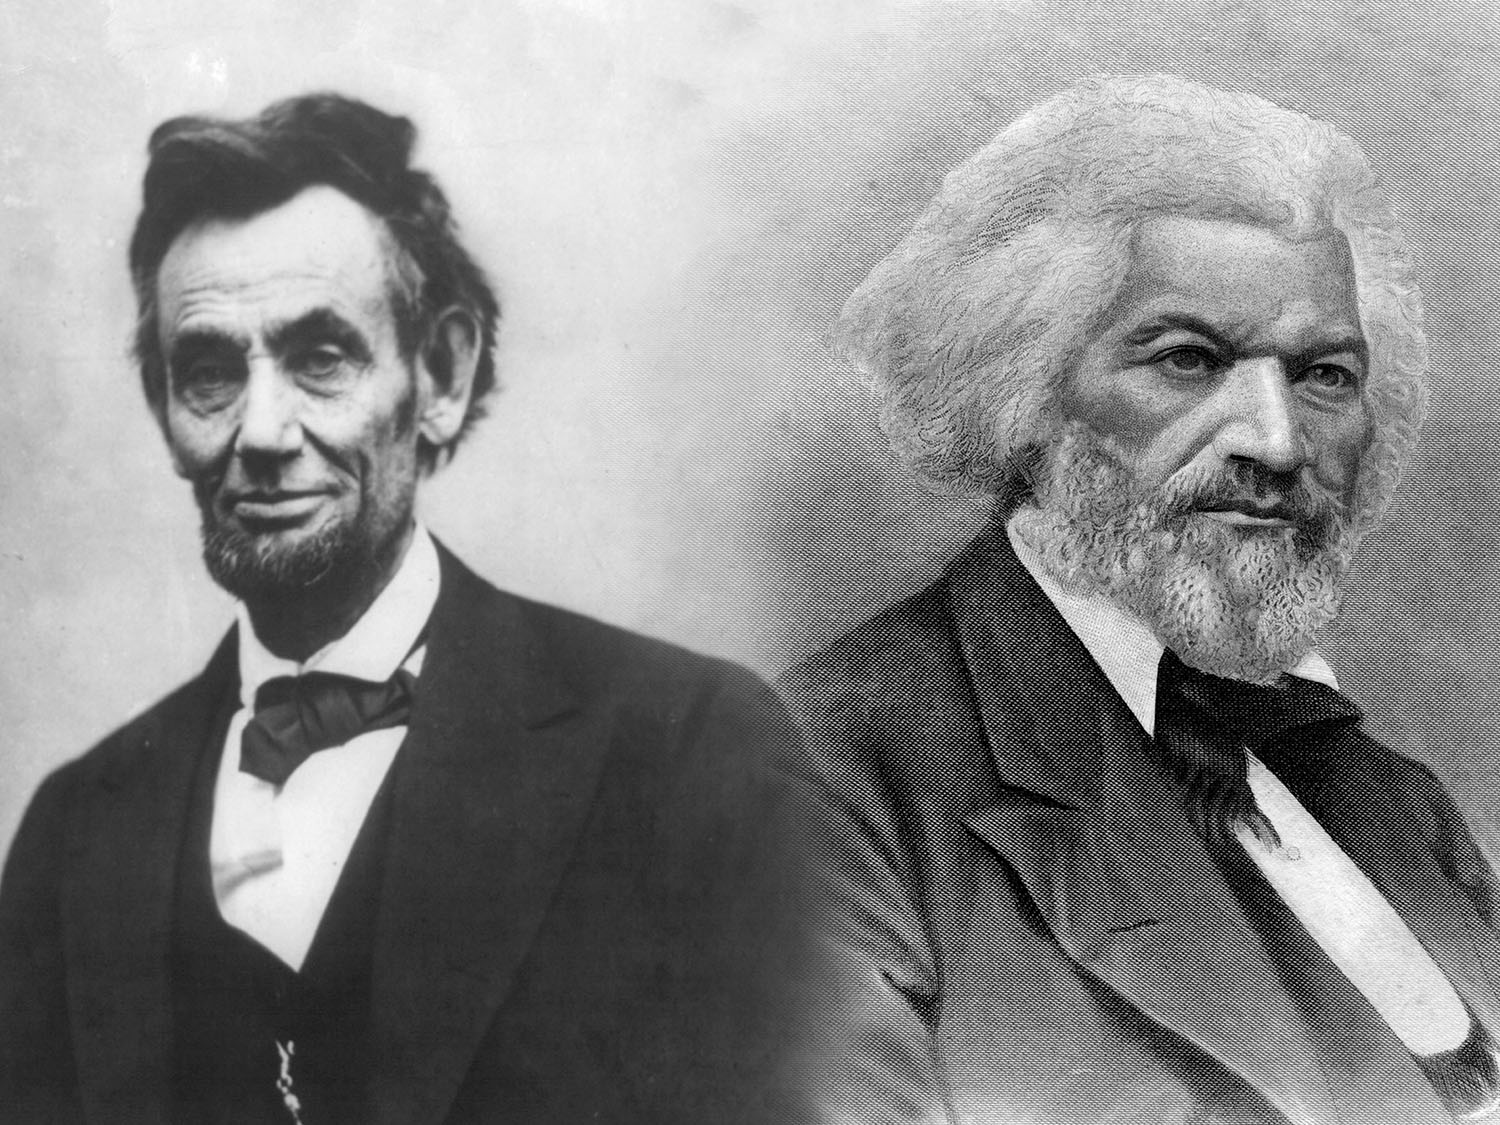 Emerson and douglass compare and contrast